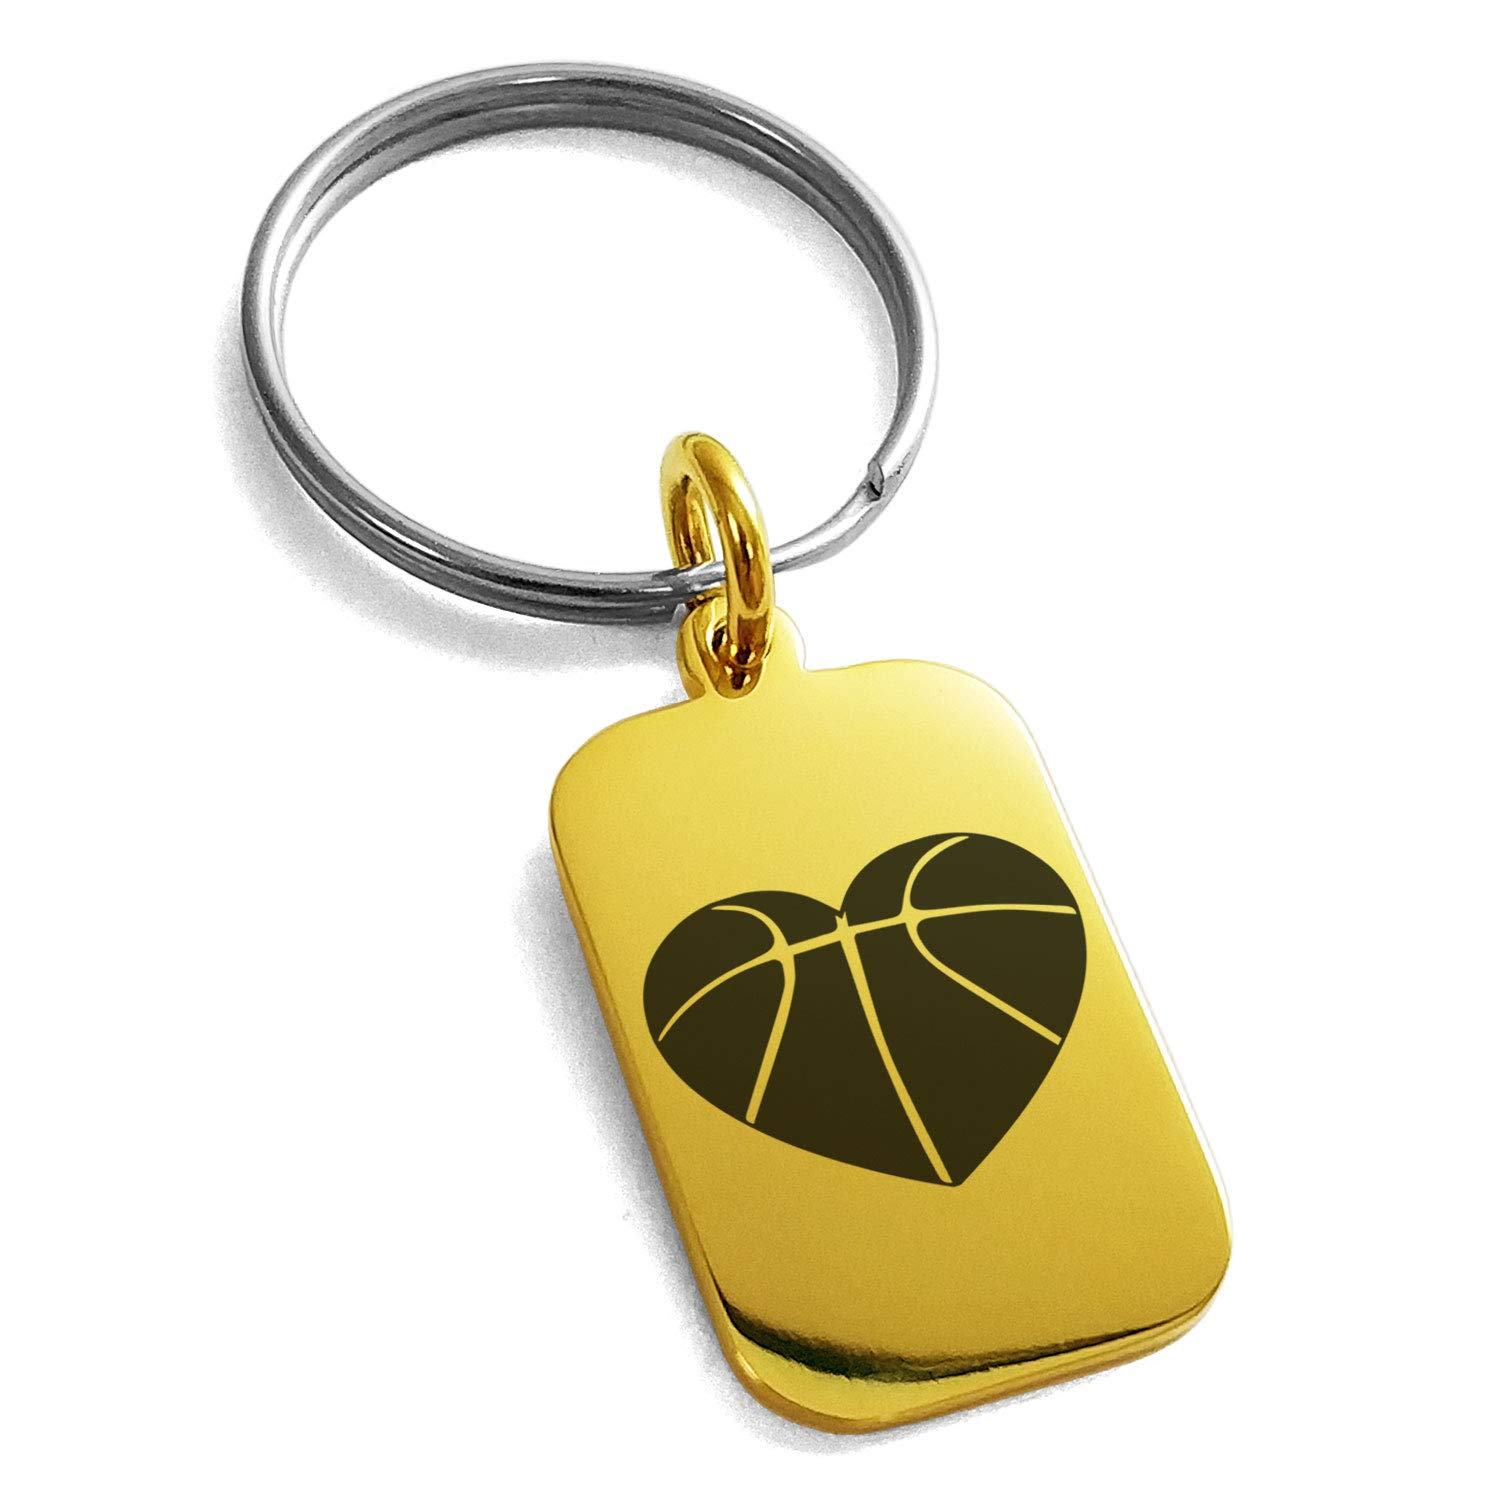 Tioneer Gold Plated Stainless Steel Love Basketball Heart Engraved Small Rectangle Dog Tag Charm Keychain Keyring by Tioneer (Image #1)